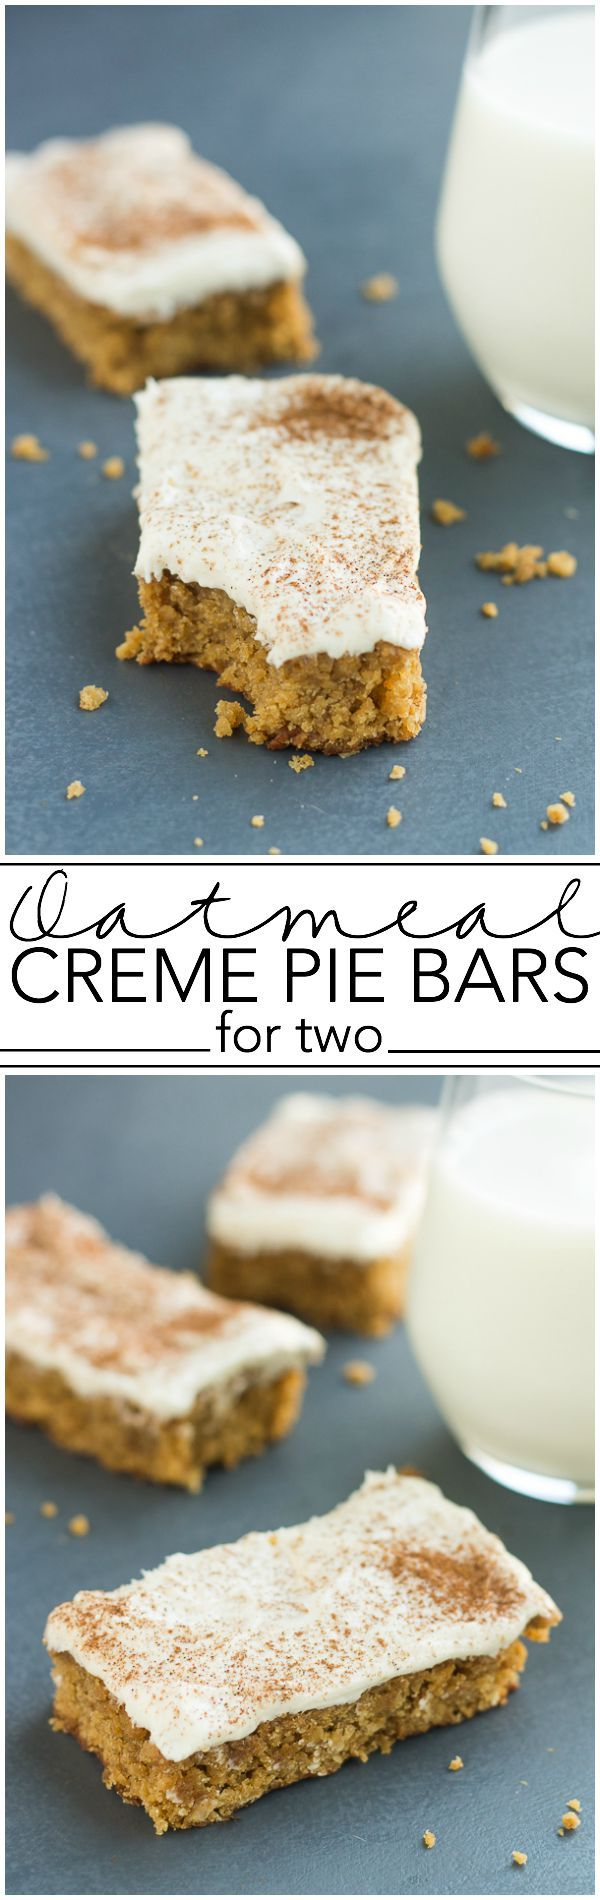 Small Batch Oatmeal Creme Pie Bars, inspired by Little Debbie Oatmeal Creme Pies (but better!). Recipe makes just 4 bars. // www.smallbatchtreats.com